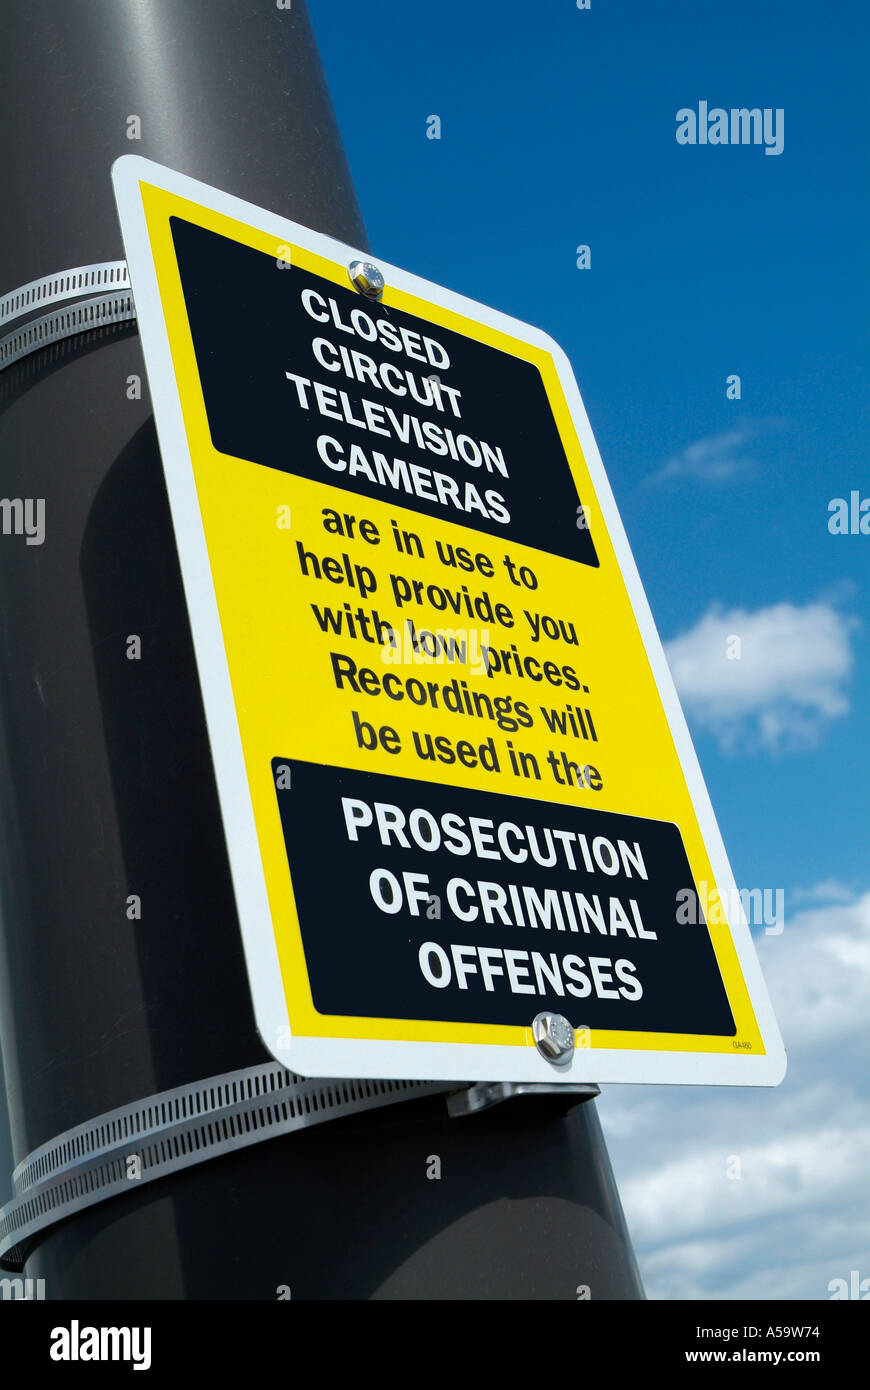 Closed circuit Television camera sign in the parking lot of a large business store - Stock Image